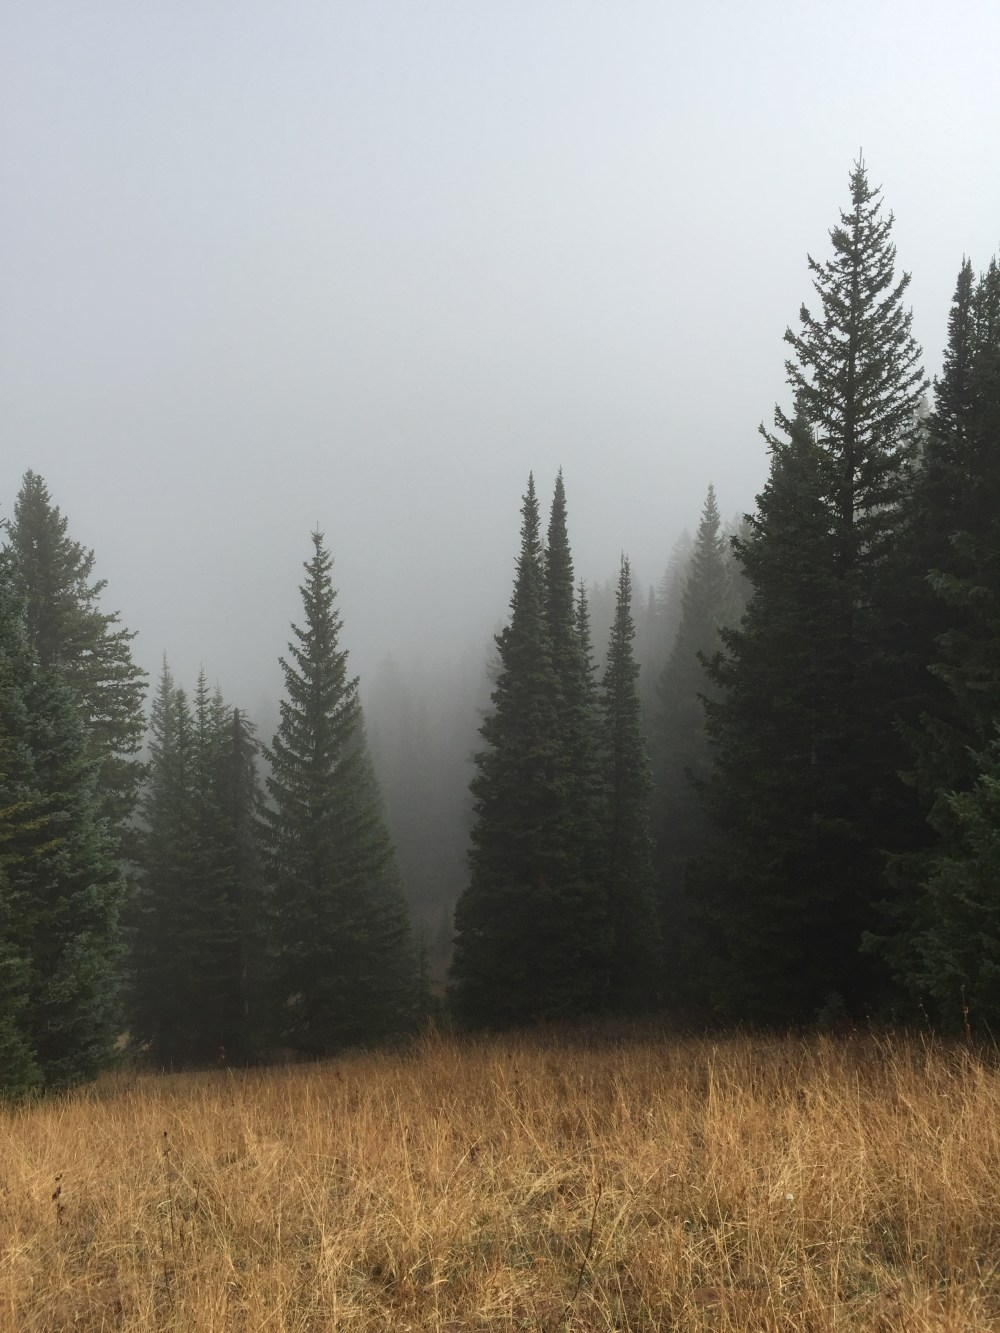 Keyword Tree Forest Pine And Mist Hd Photo By Bradley Swenson